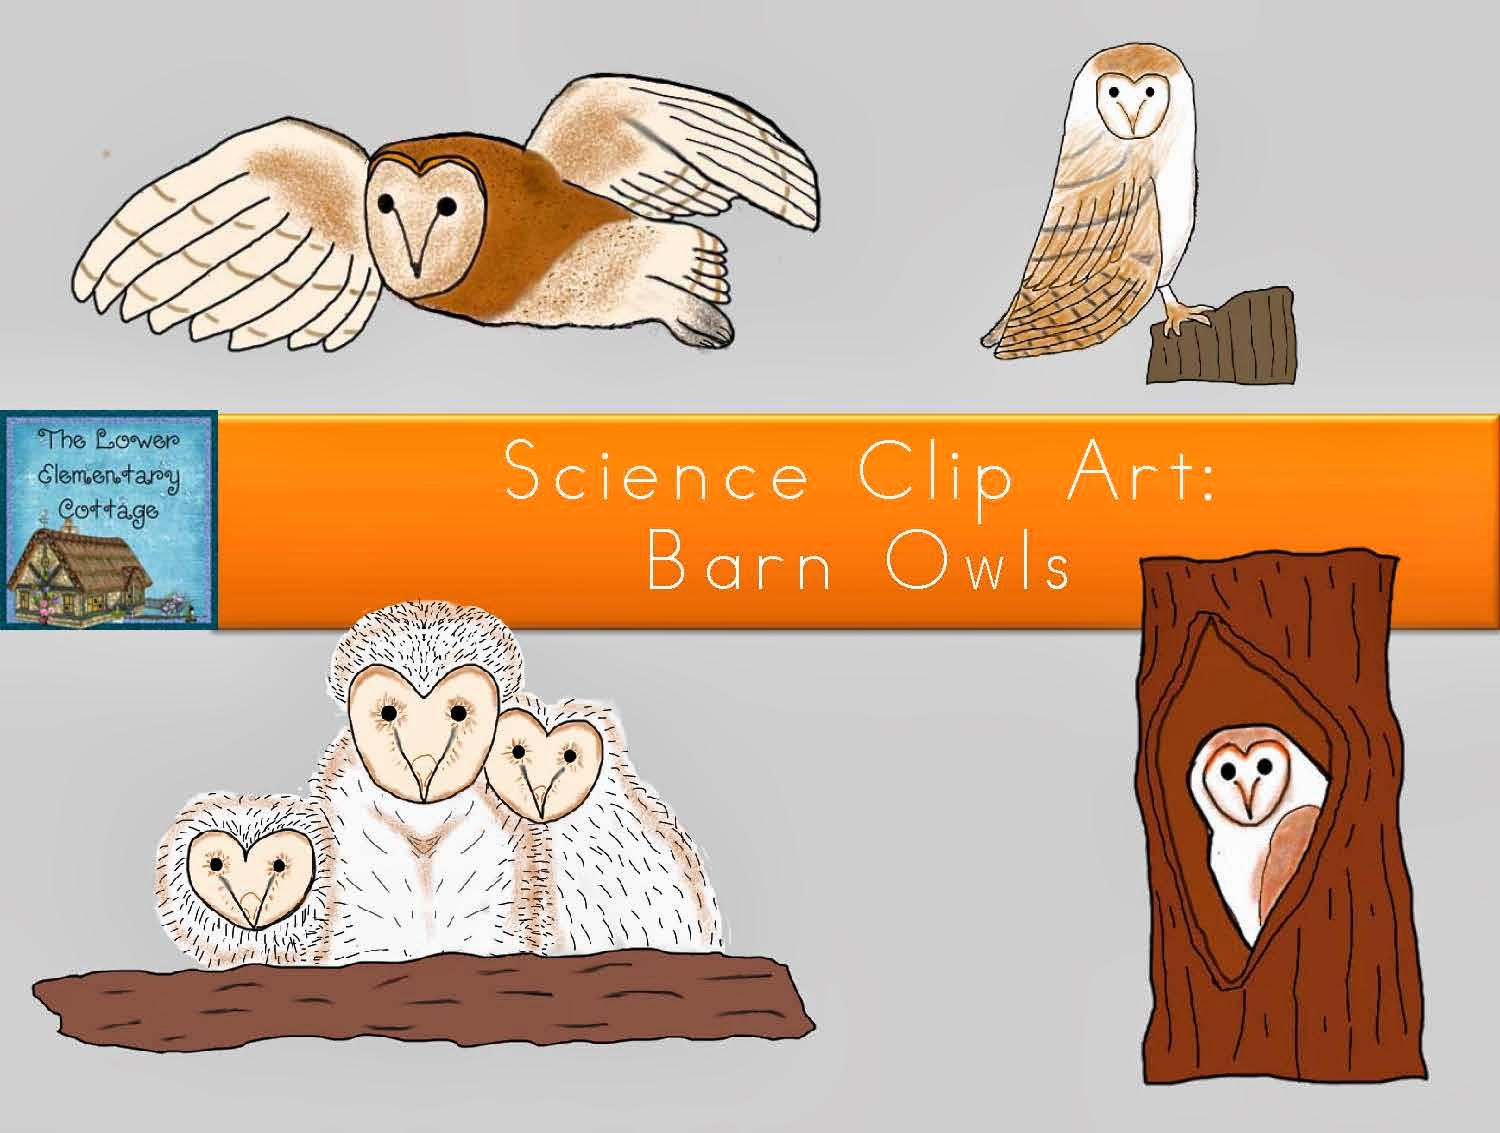 The Lower Elementary Cottage Owl Lessons